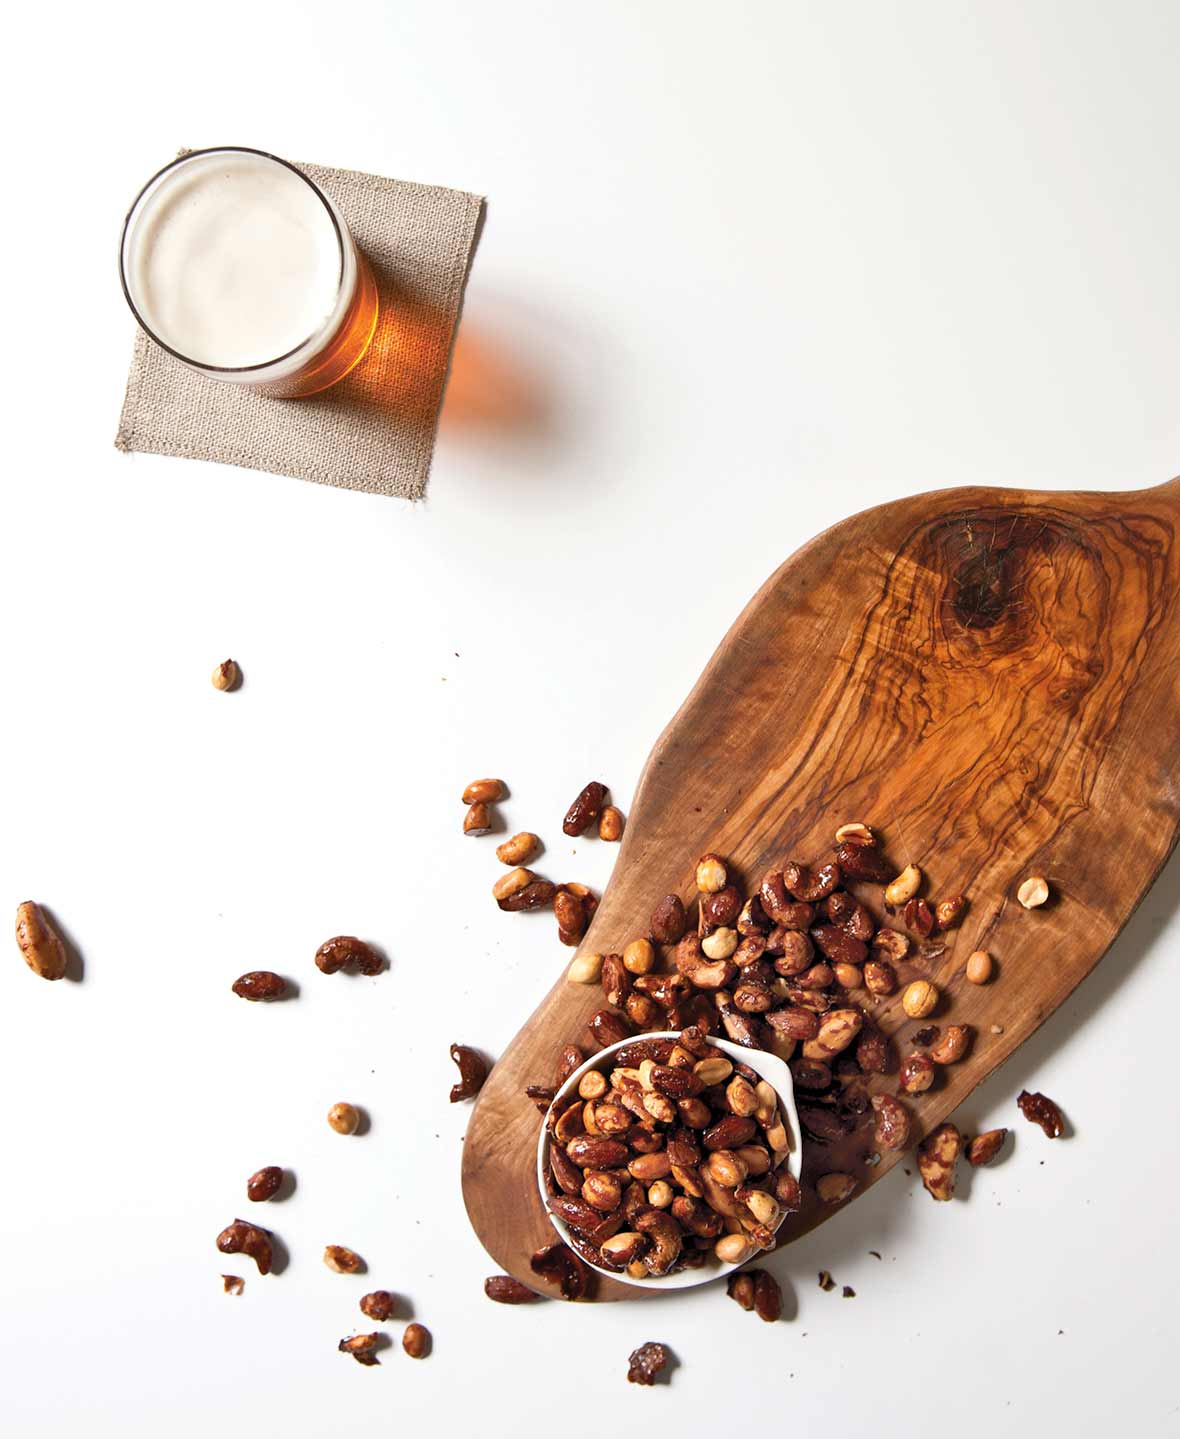 An overflowing bowl of beer nuts on a wooden board with a glass of beer on a napkin beside it.